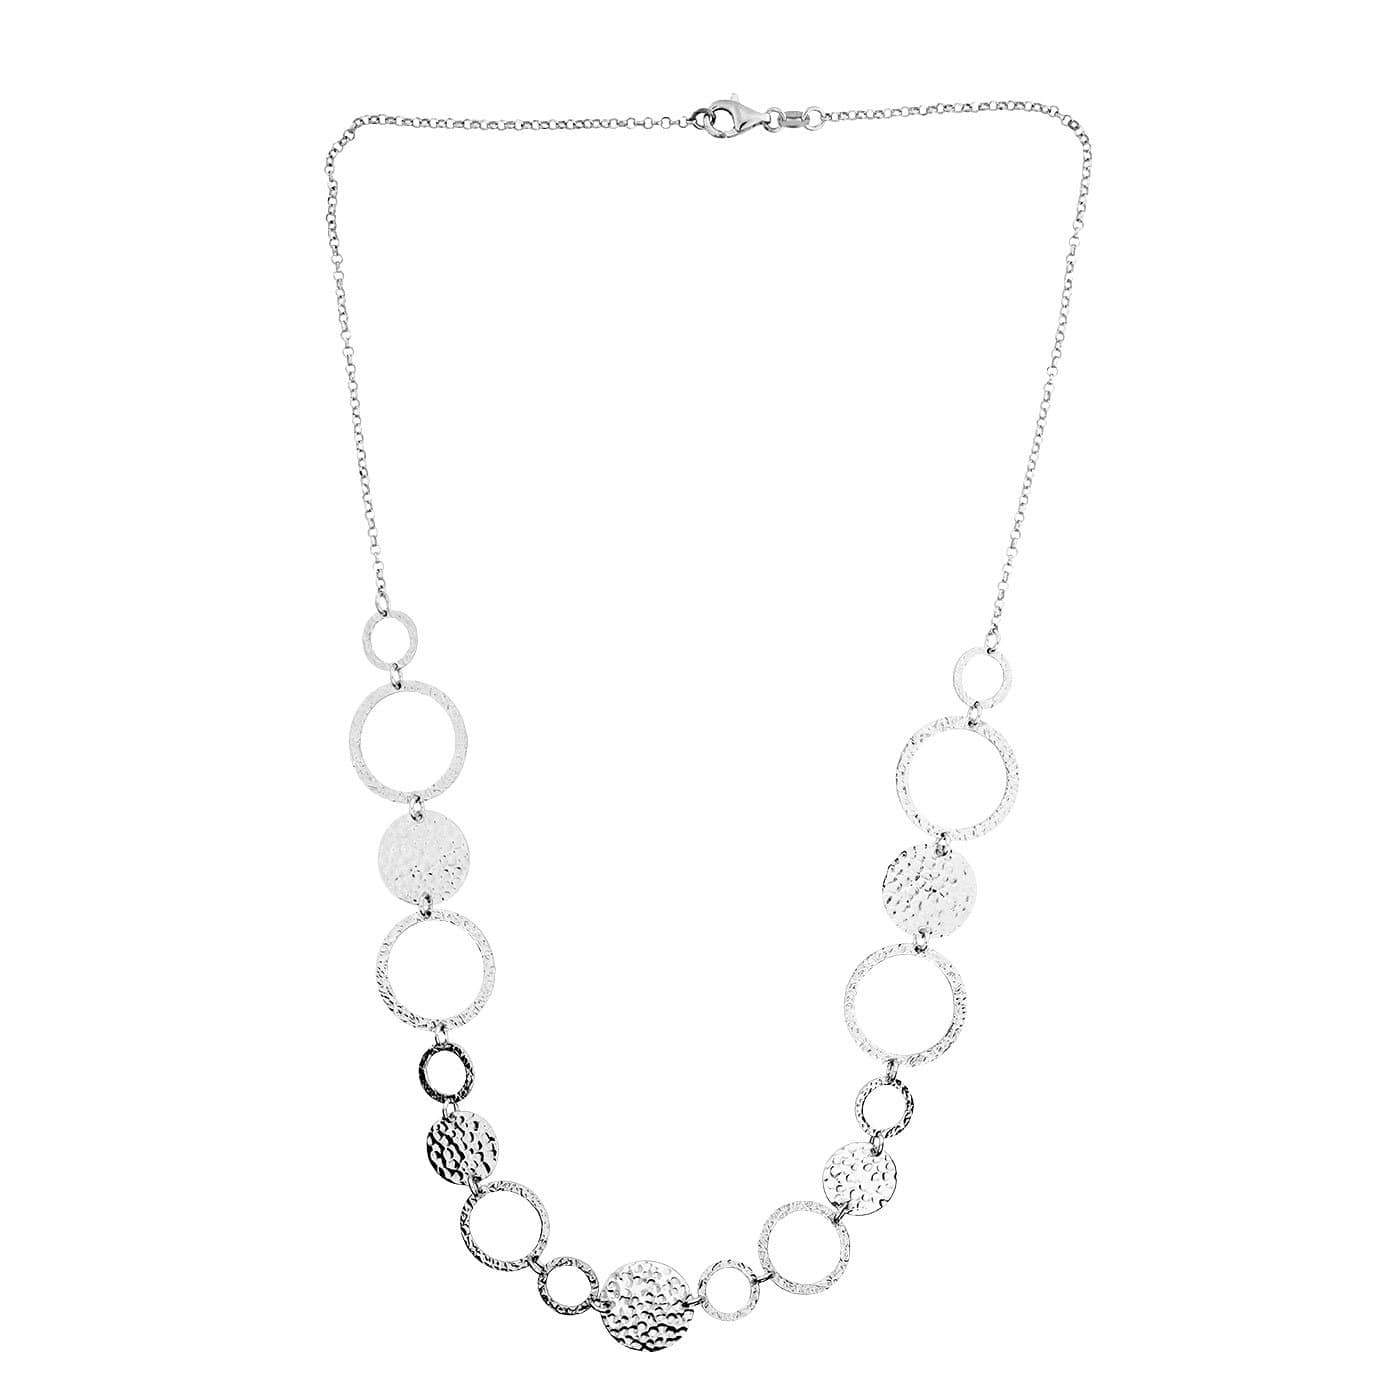 Coniston Flowing Silver Necklace